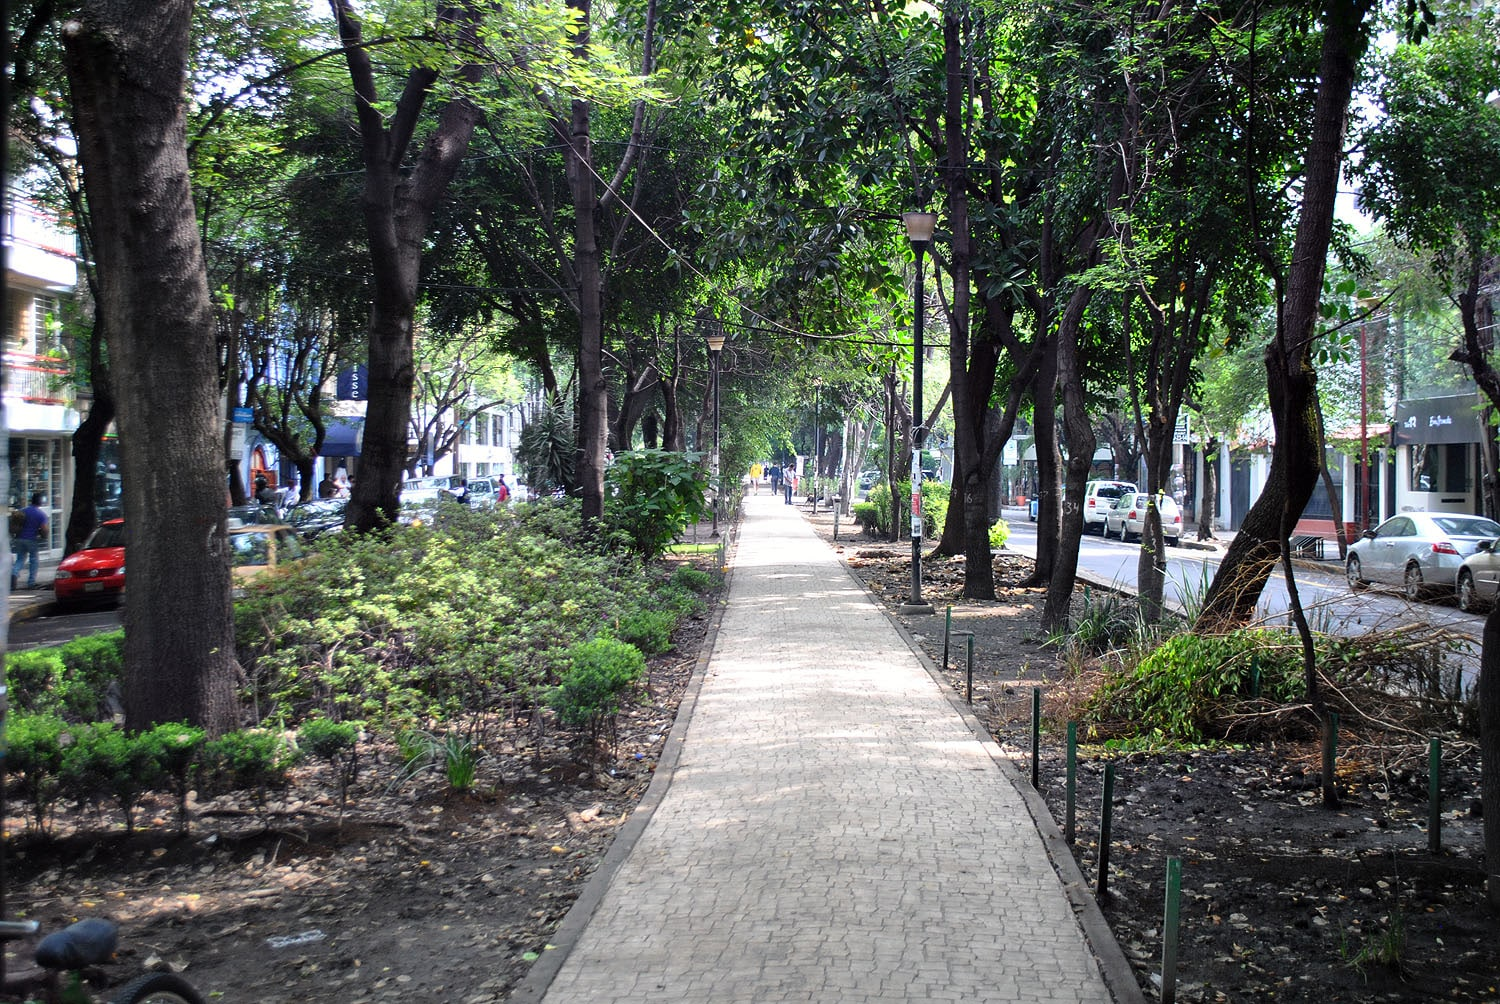 Parque Mexico is one of the best Mexico City attractions